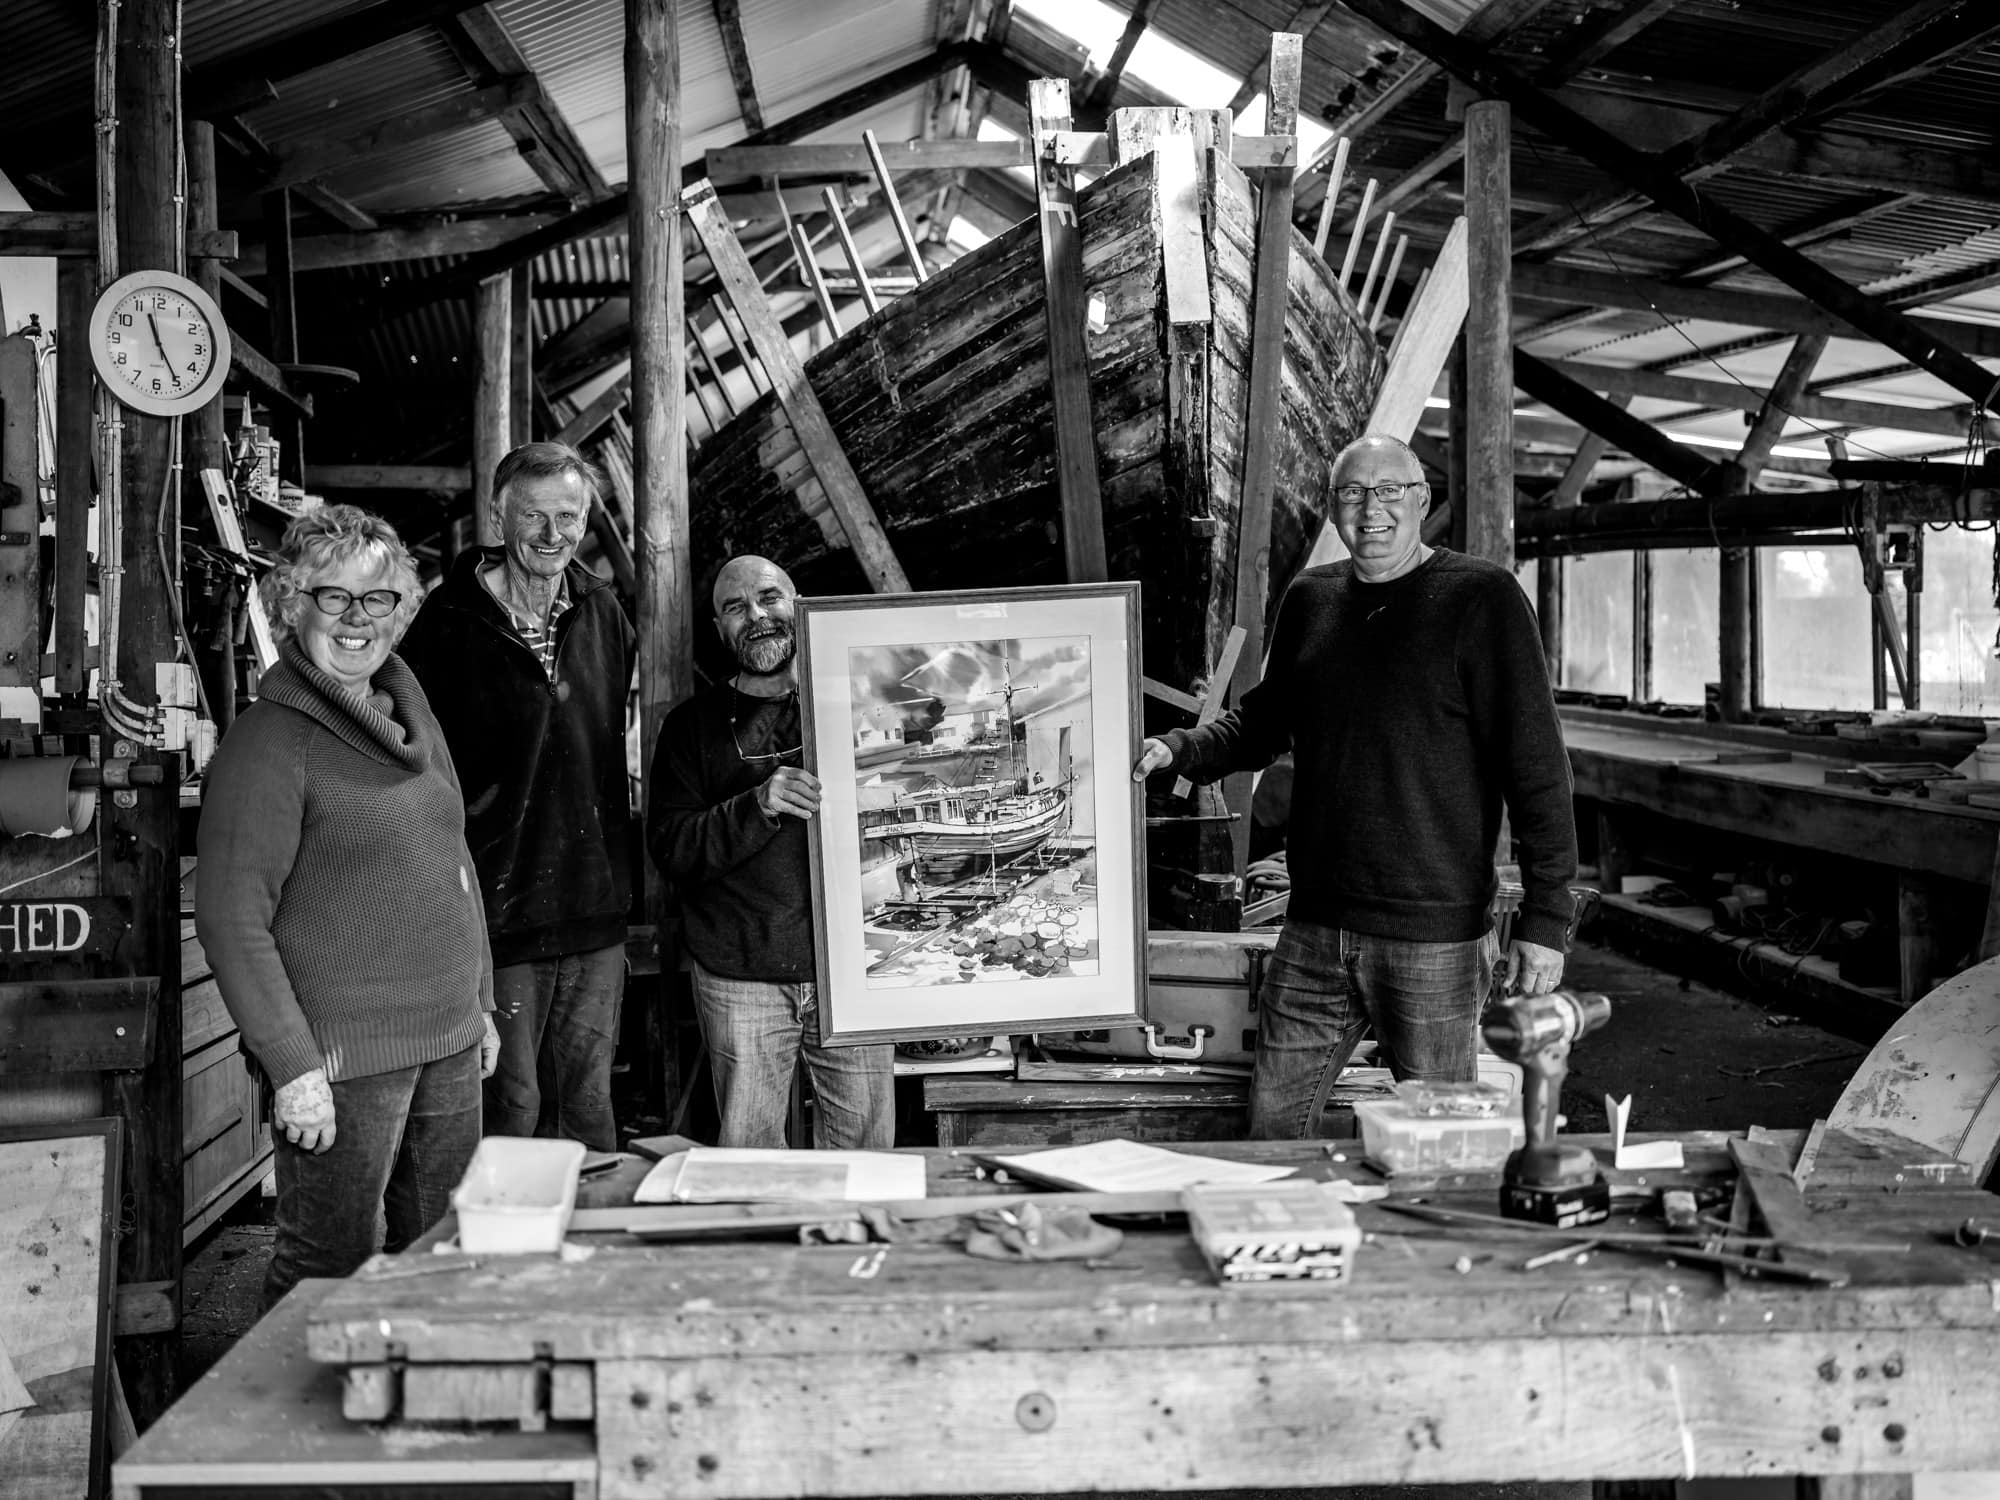 Helen and Peter Lindsay, Martin Wohlgemuth and Ian Hall of The Custodians of The Fancy, in the background you can see The Fancy's hull ready for restoration.